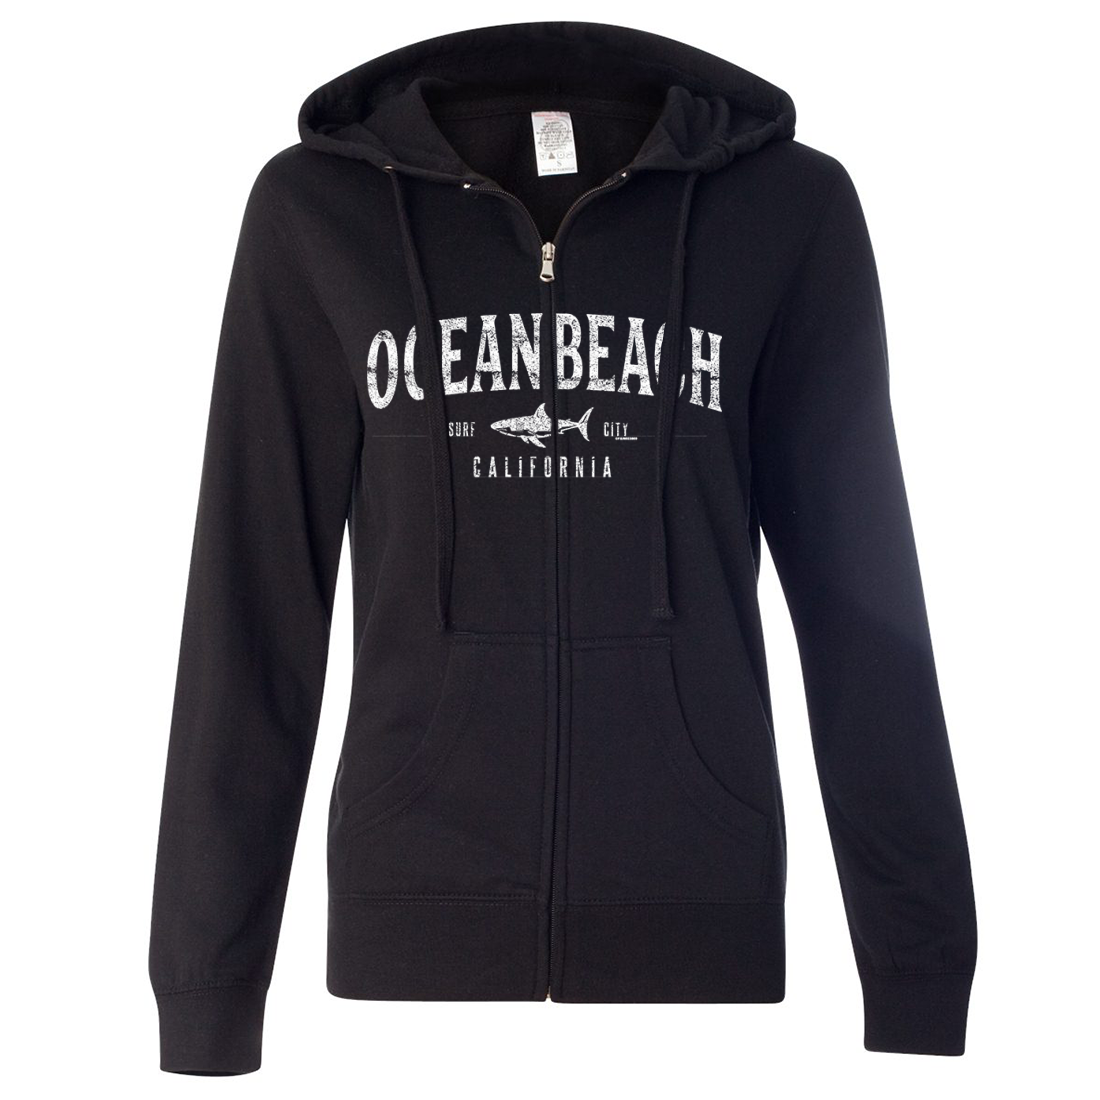 Ocean Beach California Ladies Lightweight Fitted Zip-Up Hoodie